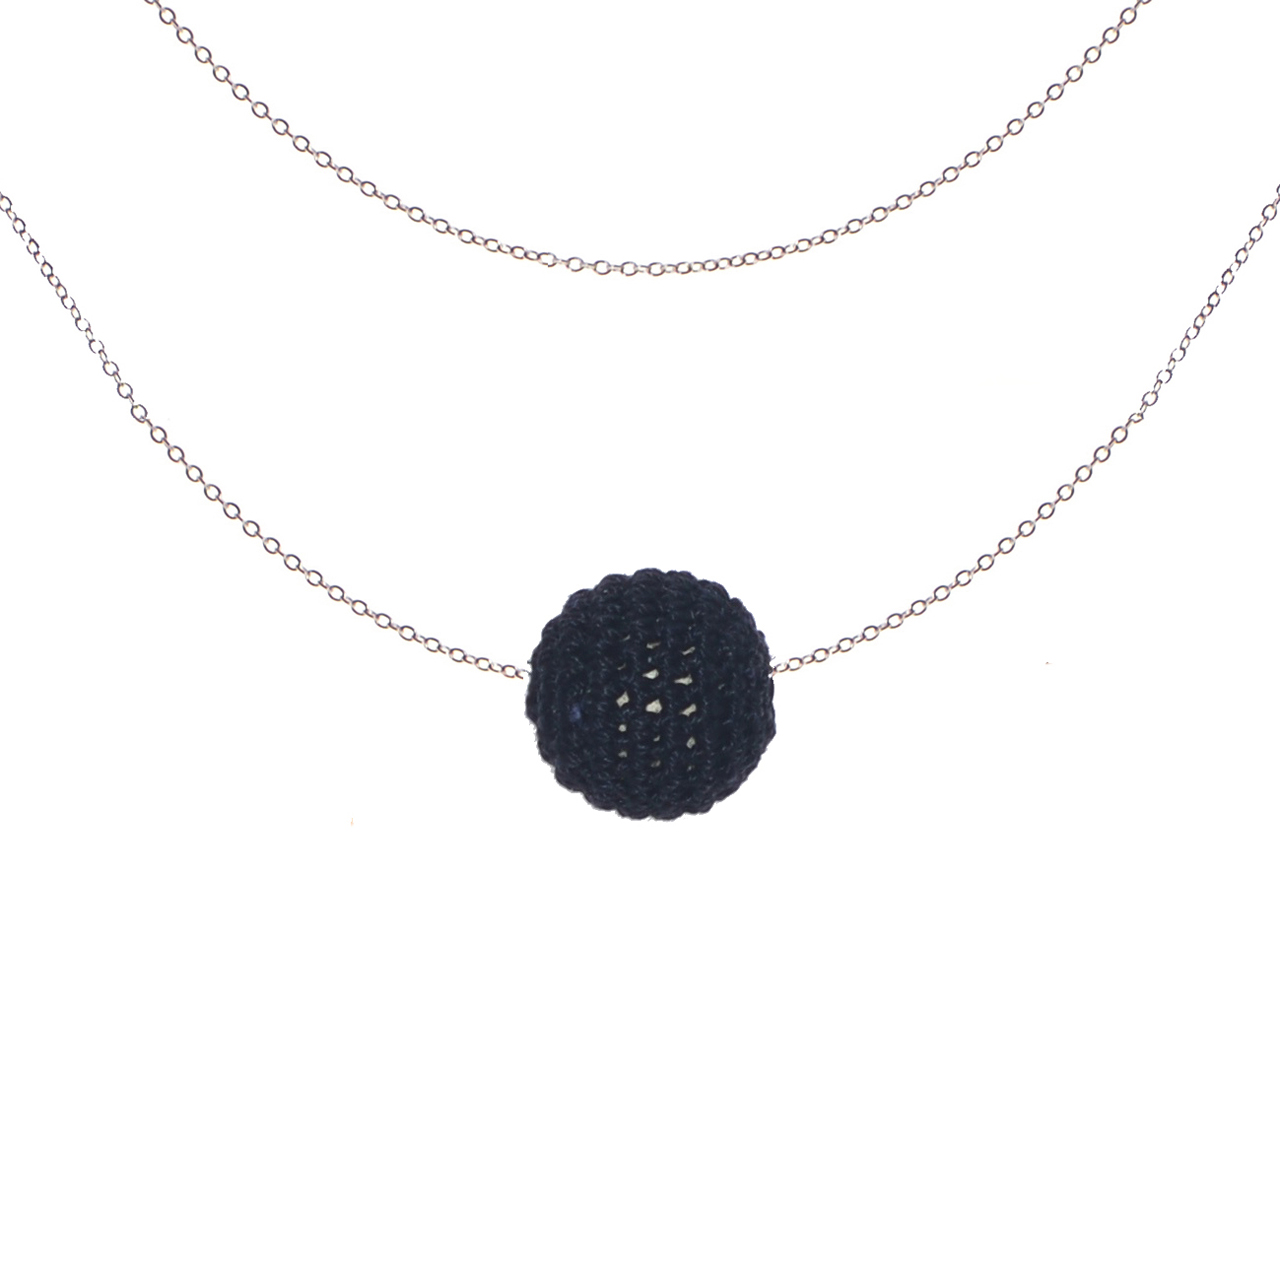 Mon Bijou - Necklace Night Out 1 charcoal   The Design Gift Shop